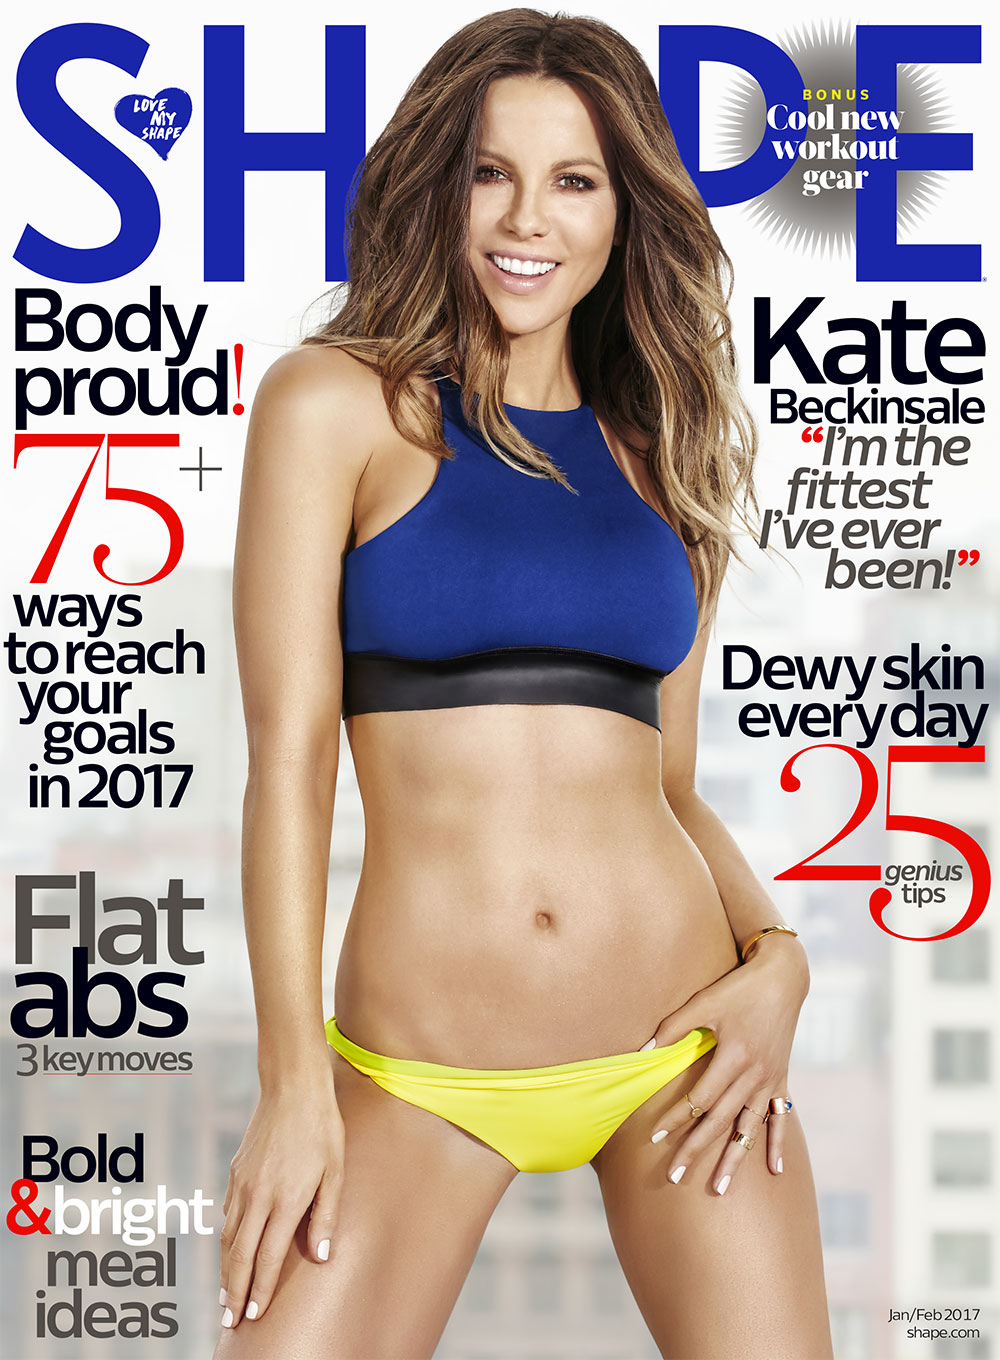 kate-beckinsale-cover-1000.jpg